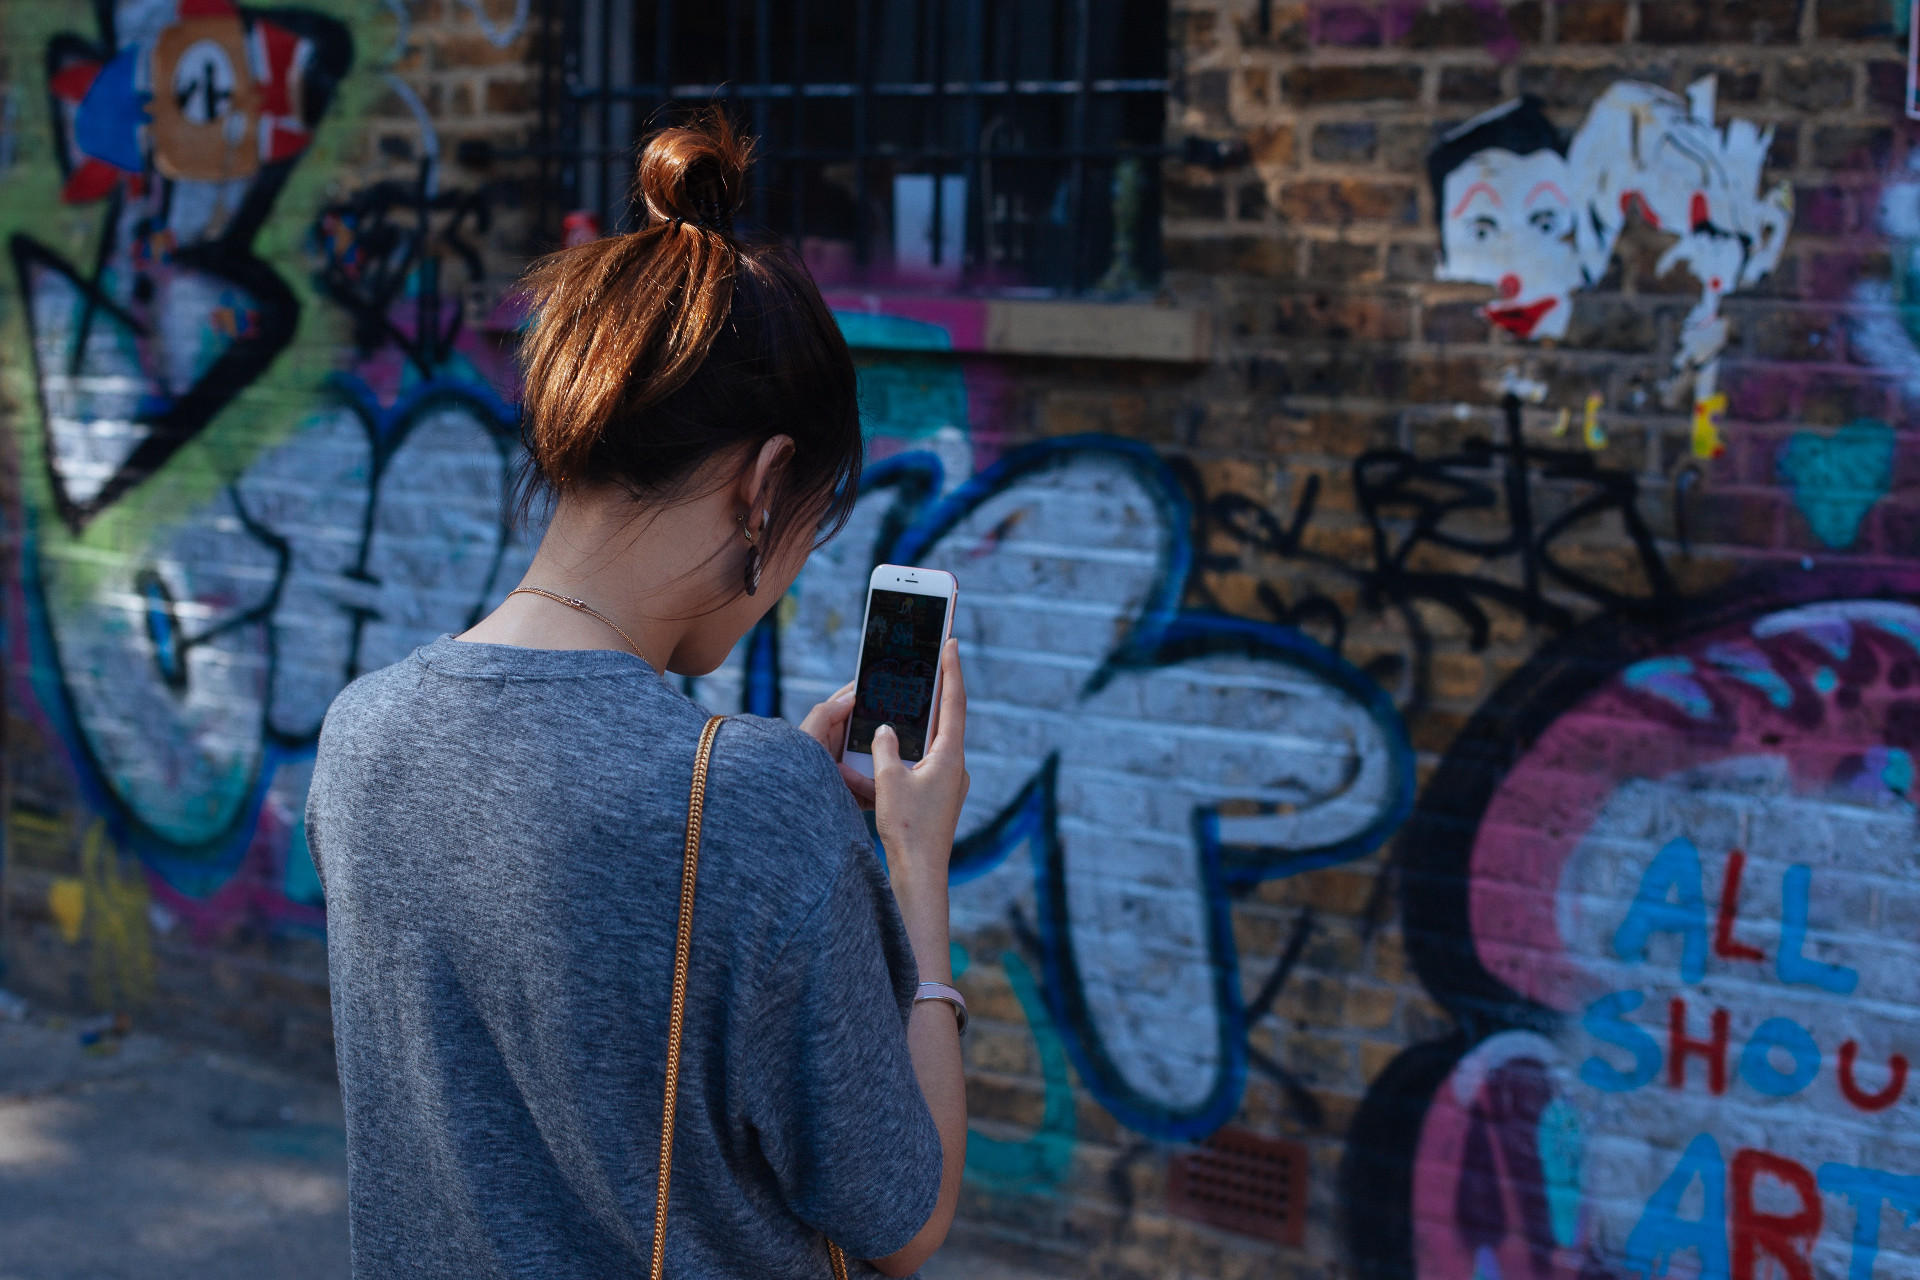 A girl taking a photo of a mural with graffiti